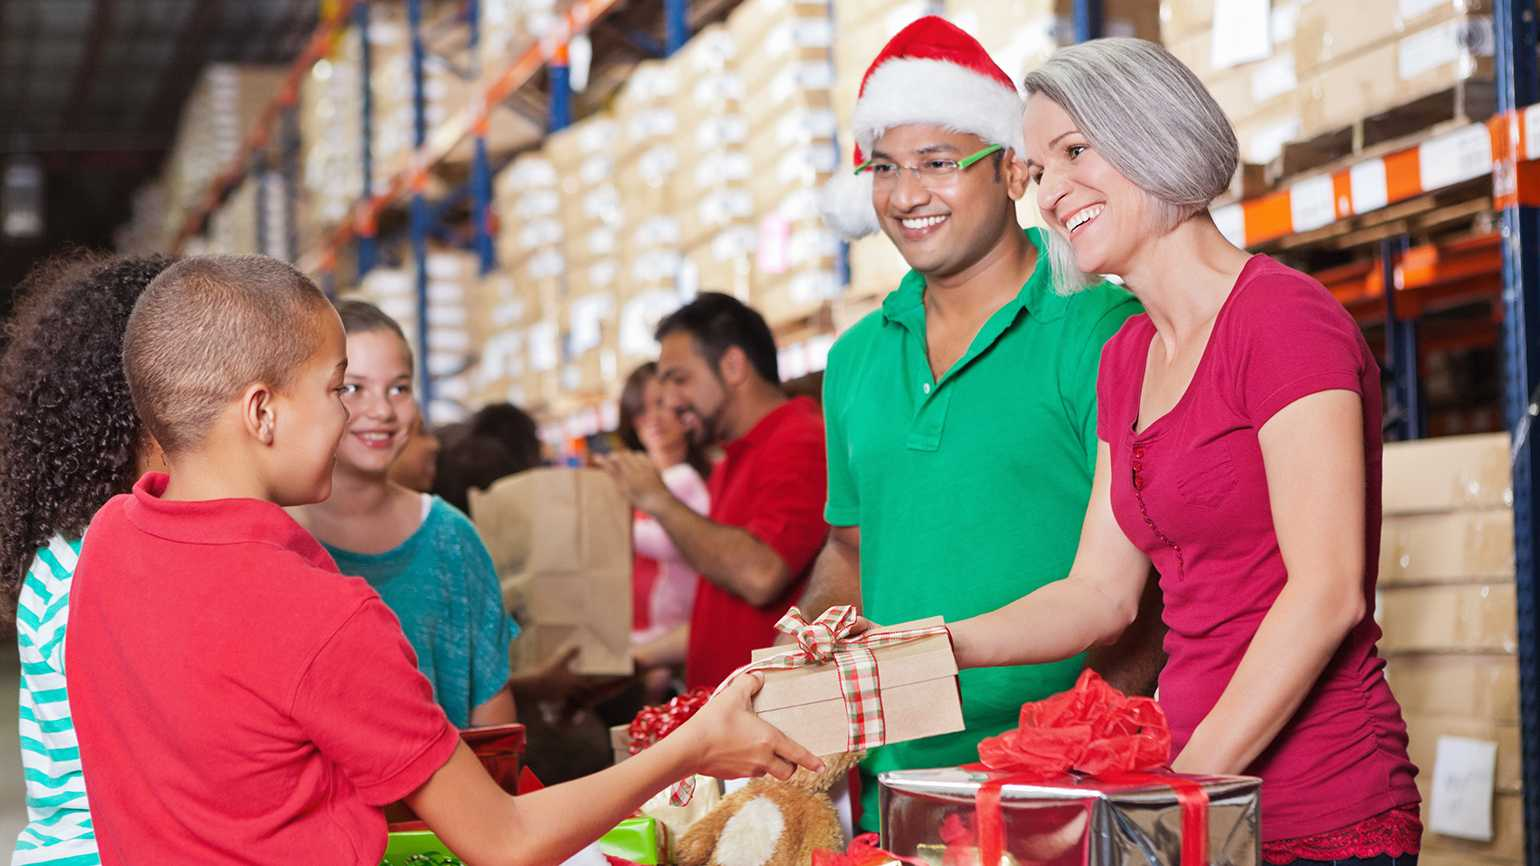 Charity volunteers give wrapped gifts to children